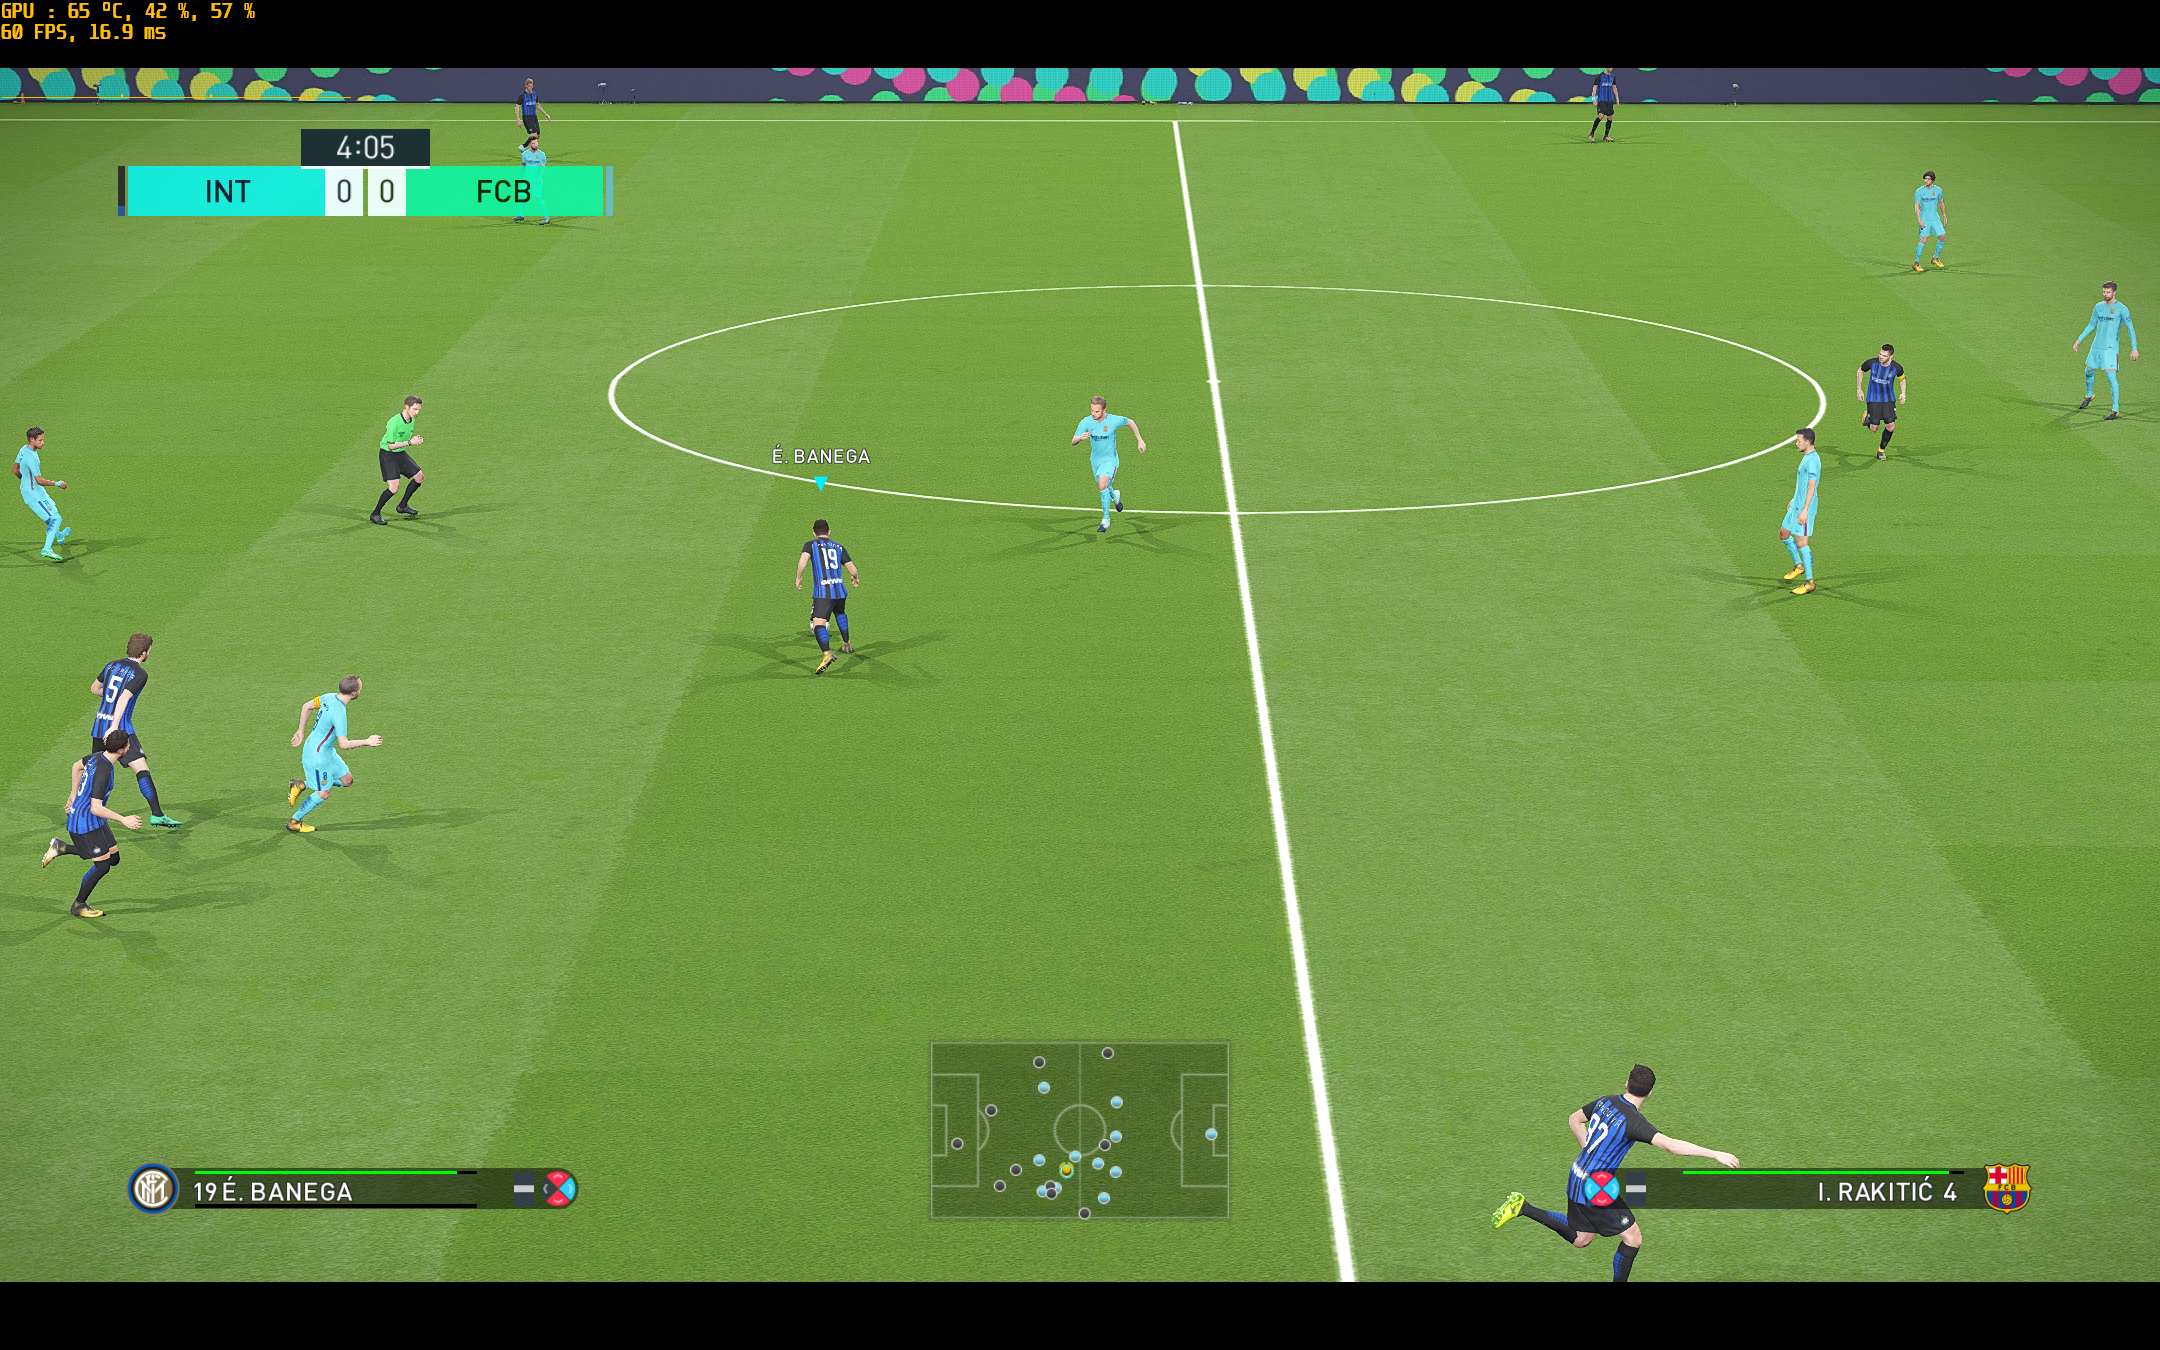 Pro_Evolution_Soccer_2018_Screenshot_2017.09.14_-_20.28.36.99.png